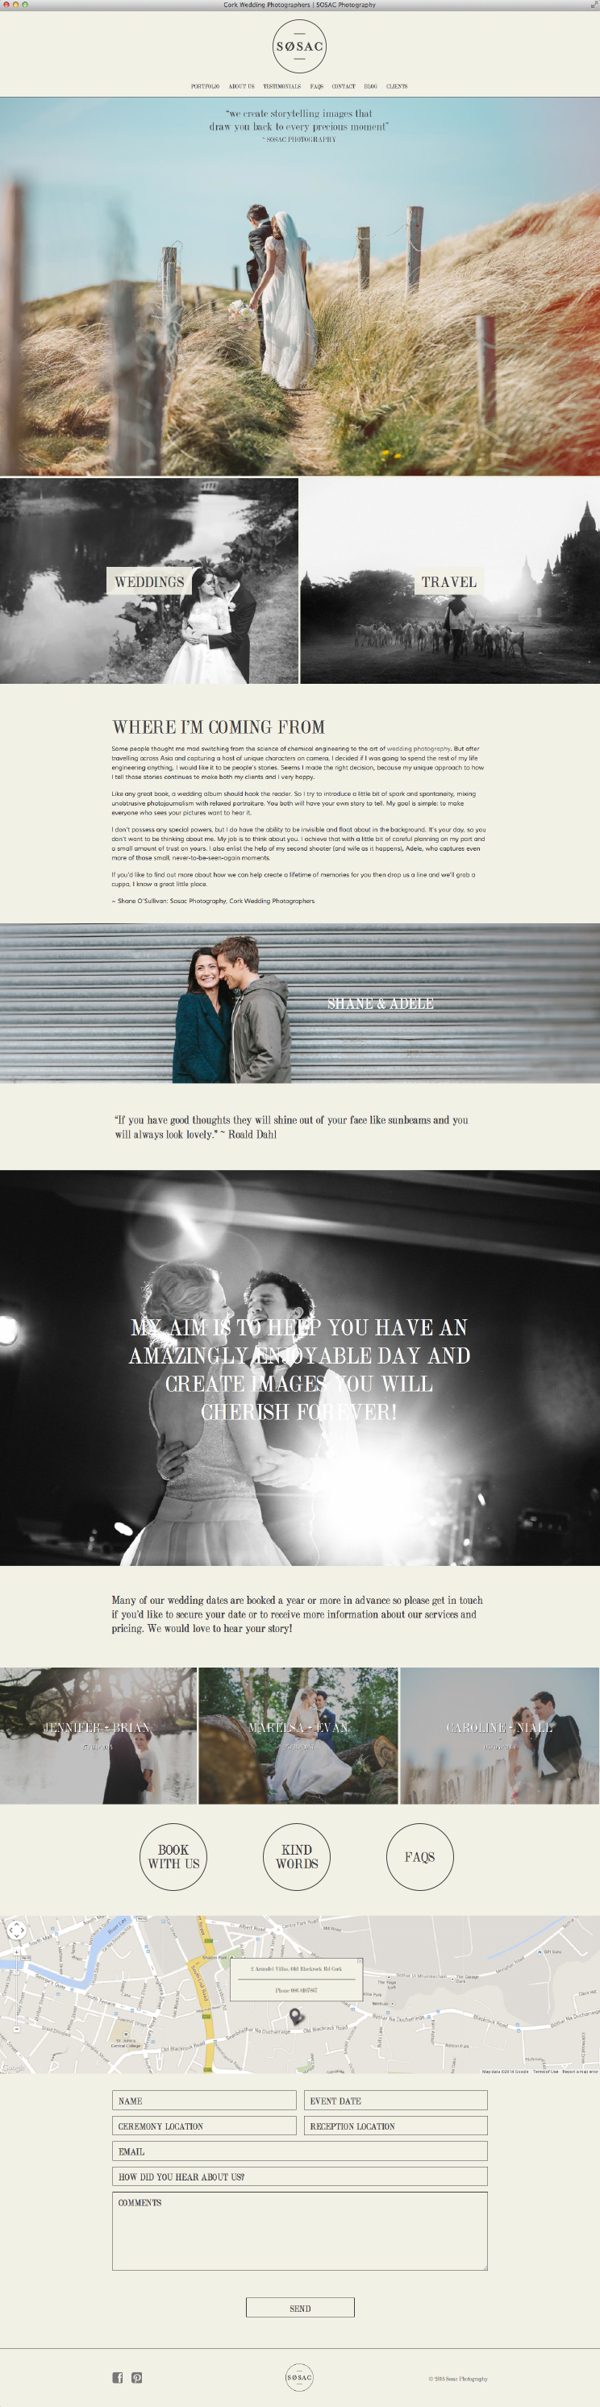 Sosac Photography Branding & Website by Cody Small, via Behance